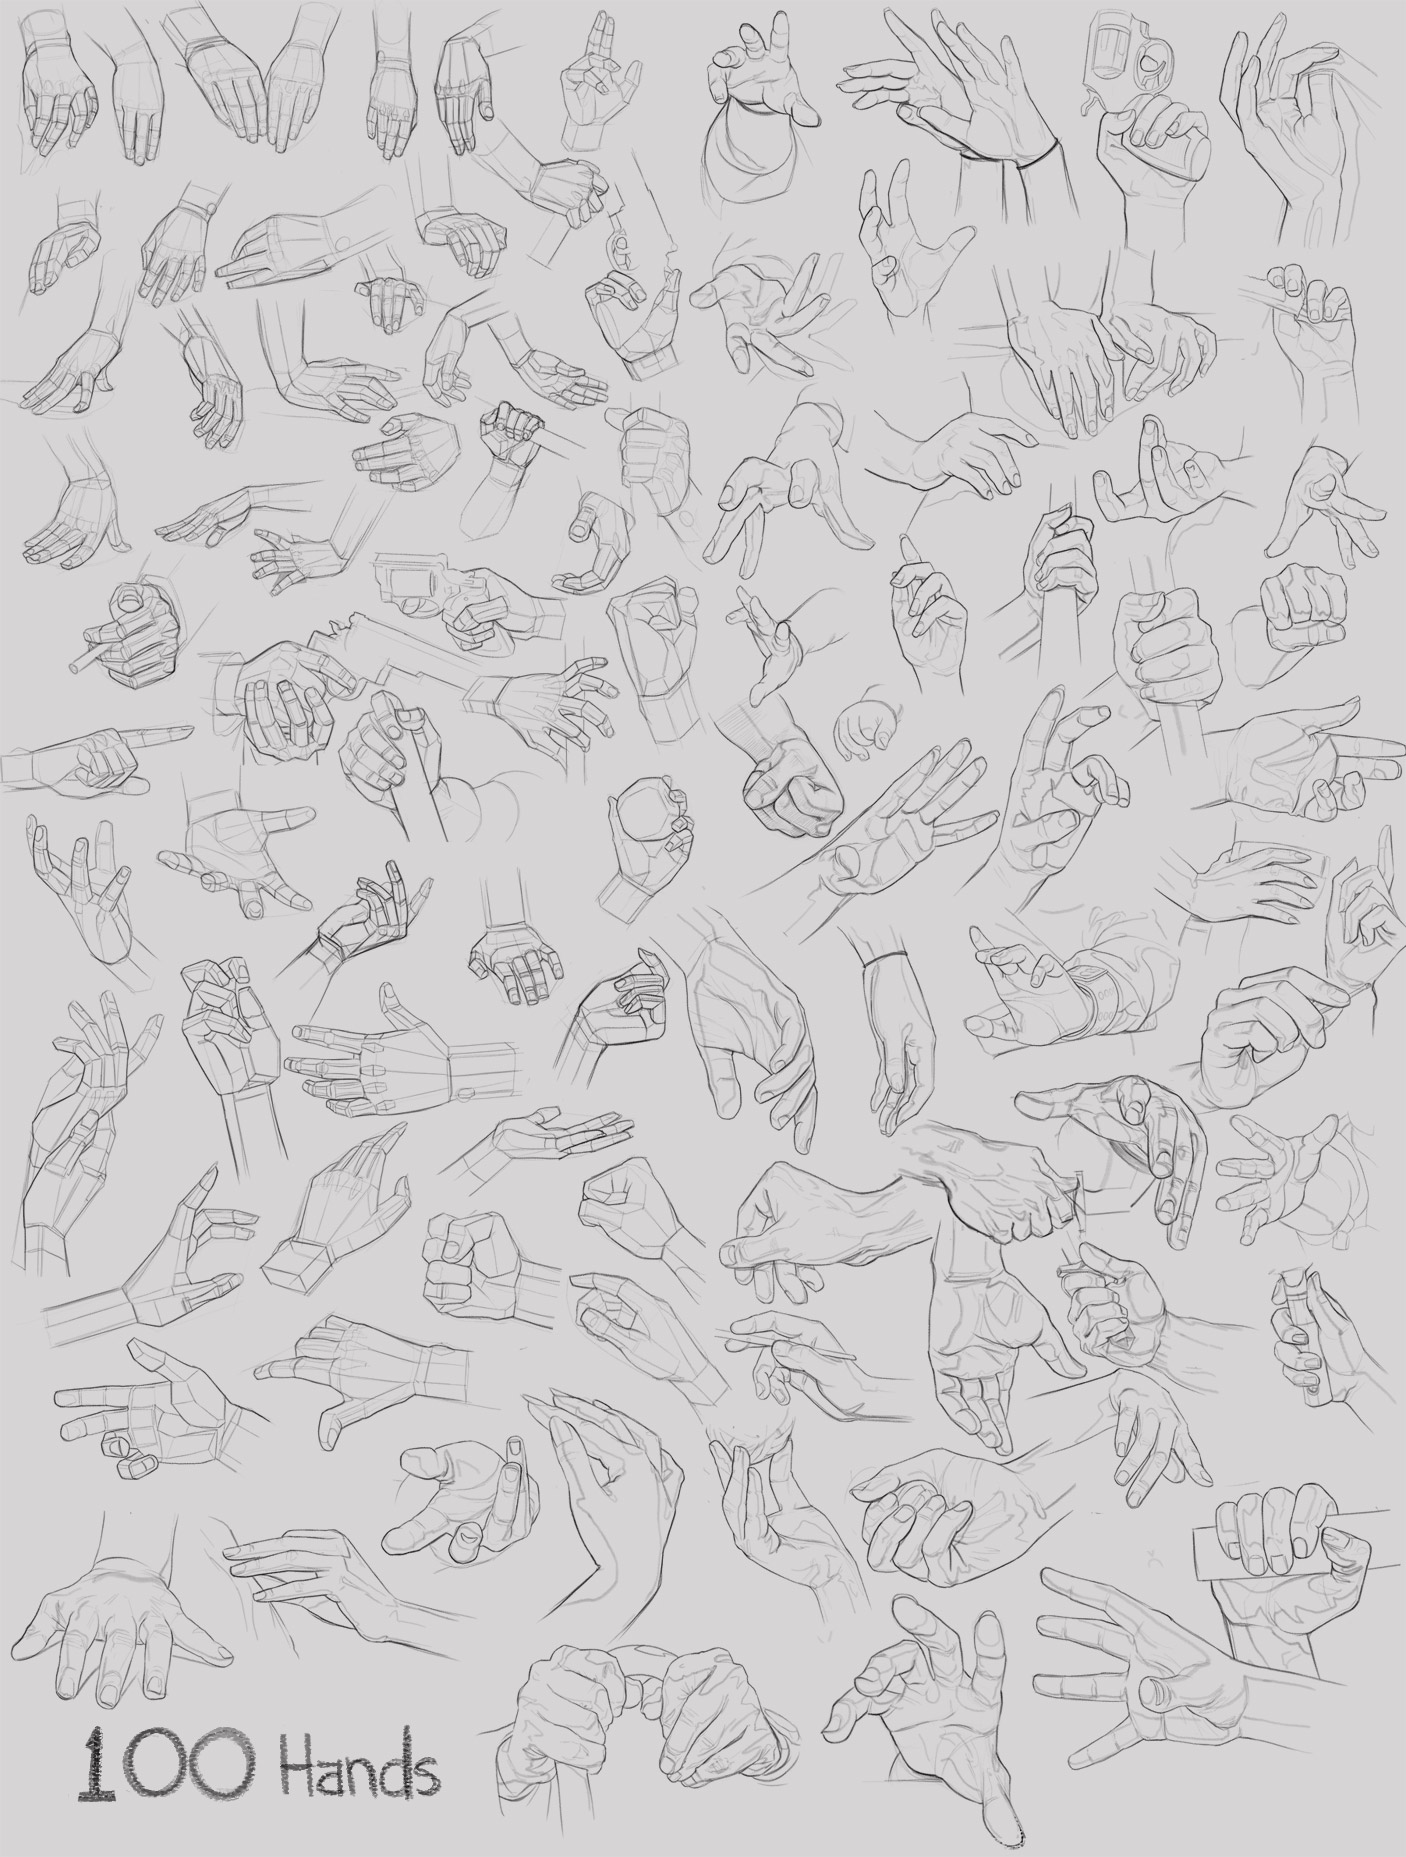 Studies of 100 hands.